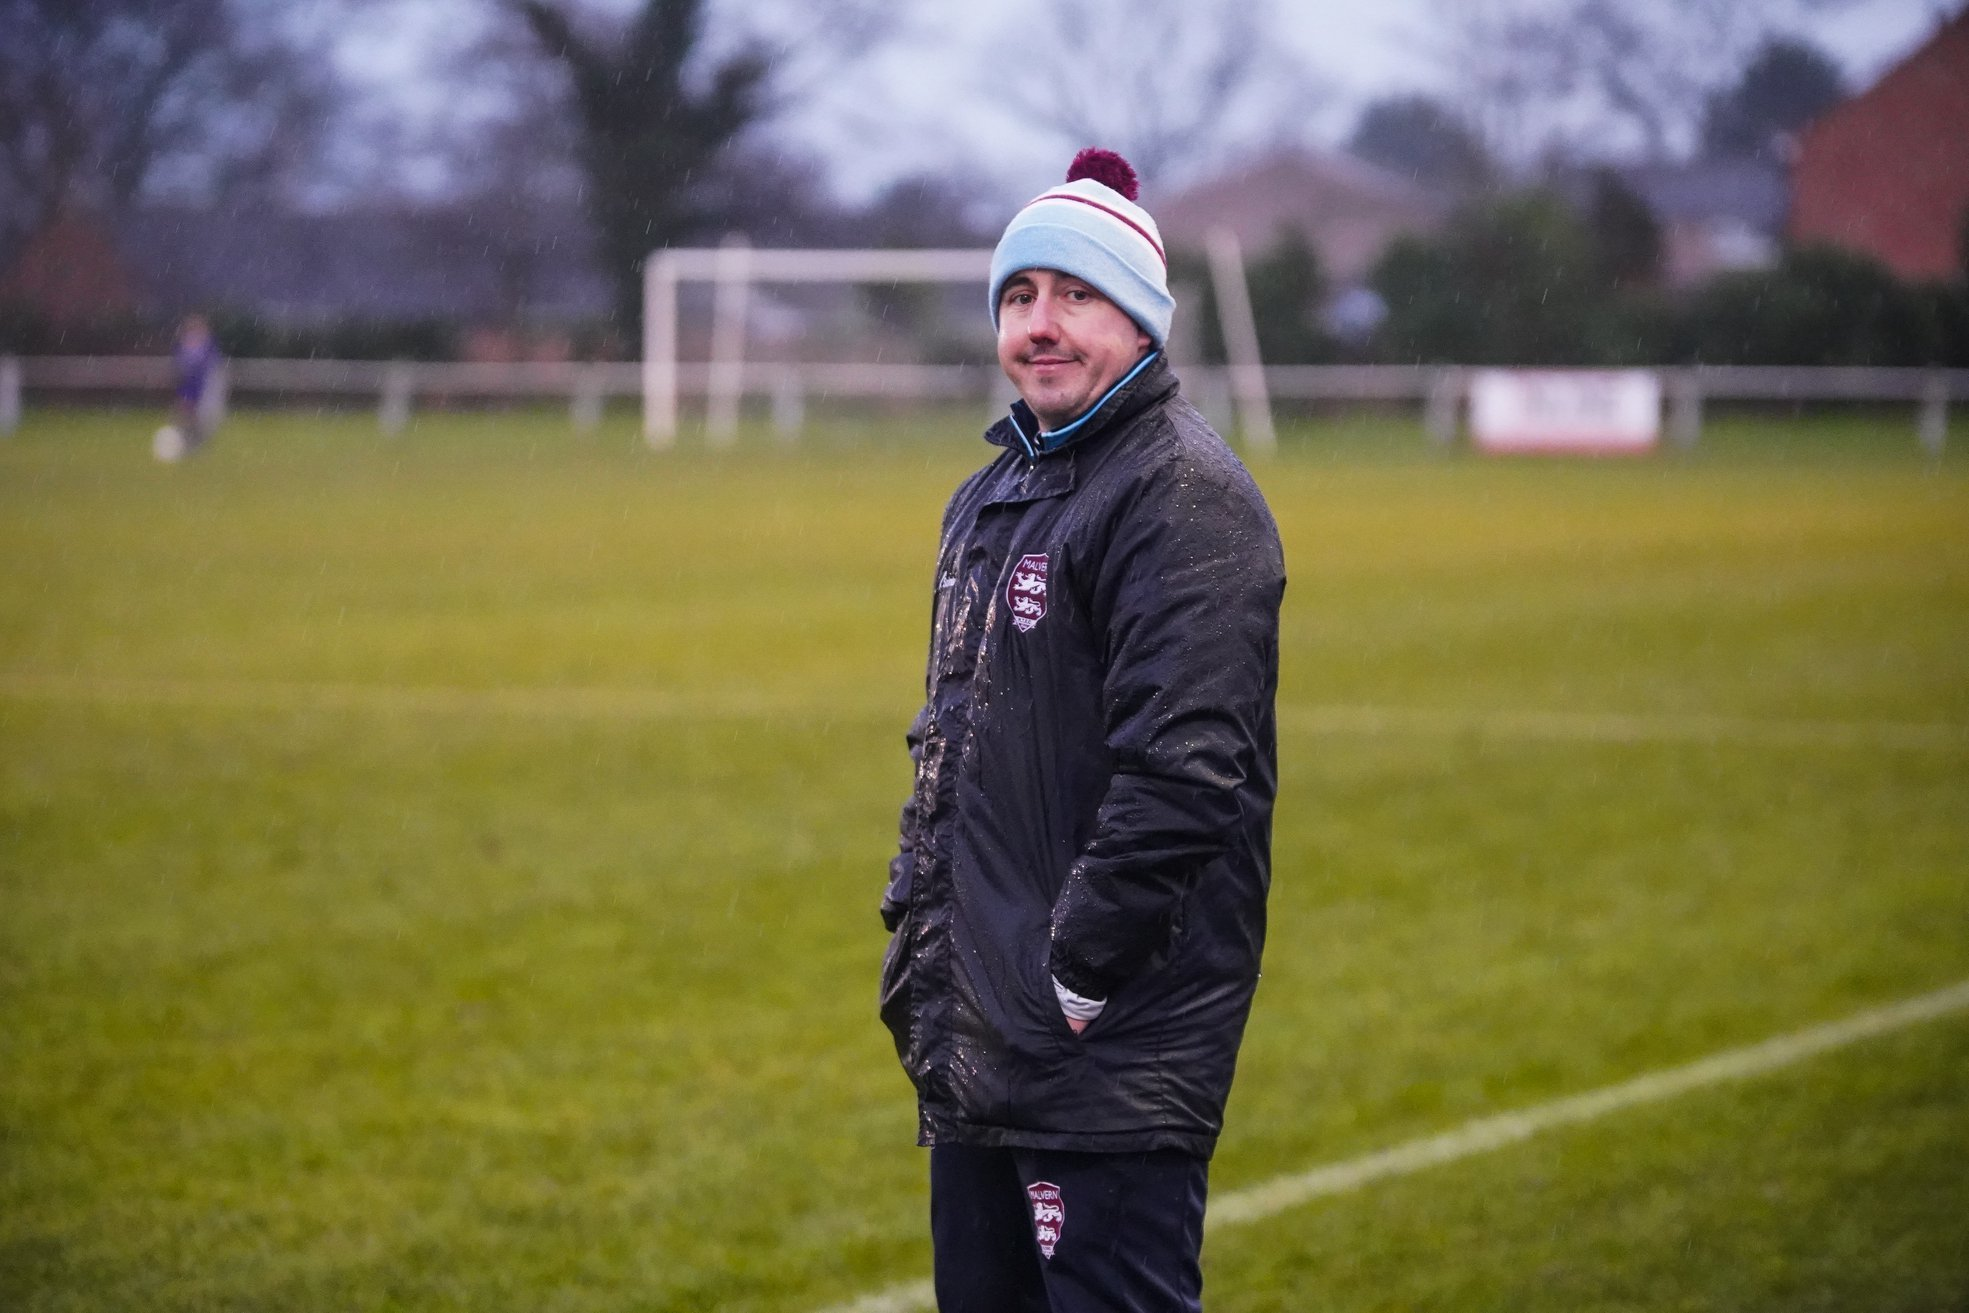 Malvern Town co-manager Lee Hooper. Picture: CLIFF WILLIAMS